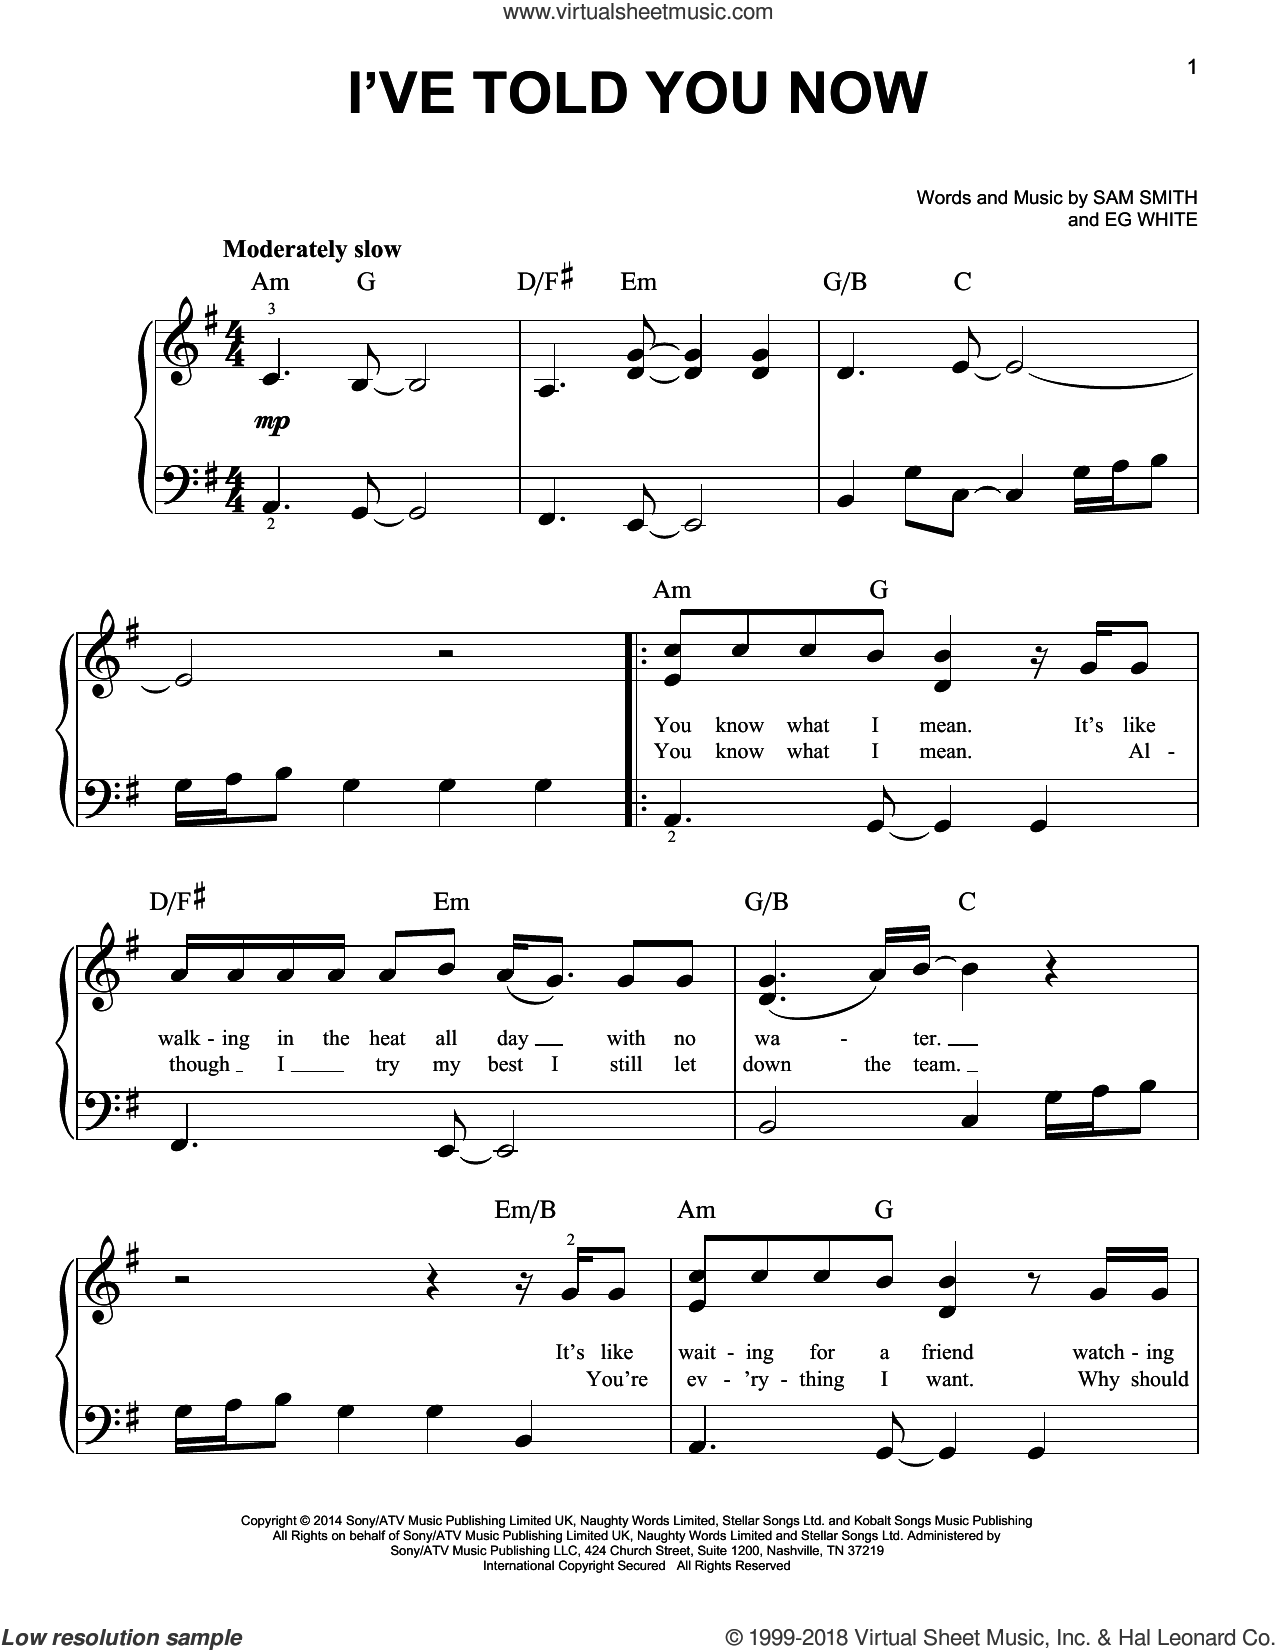 I've Told You Now sheet music for piano solo by Sam Smith, easy. Score Image Preview.